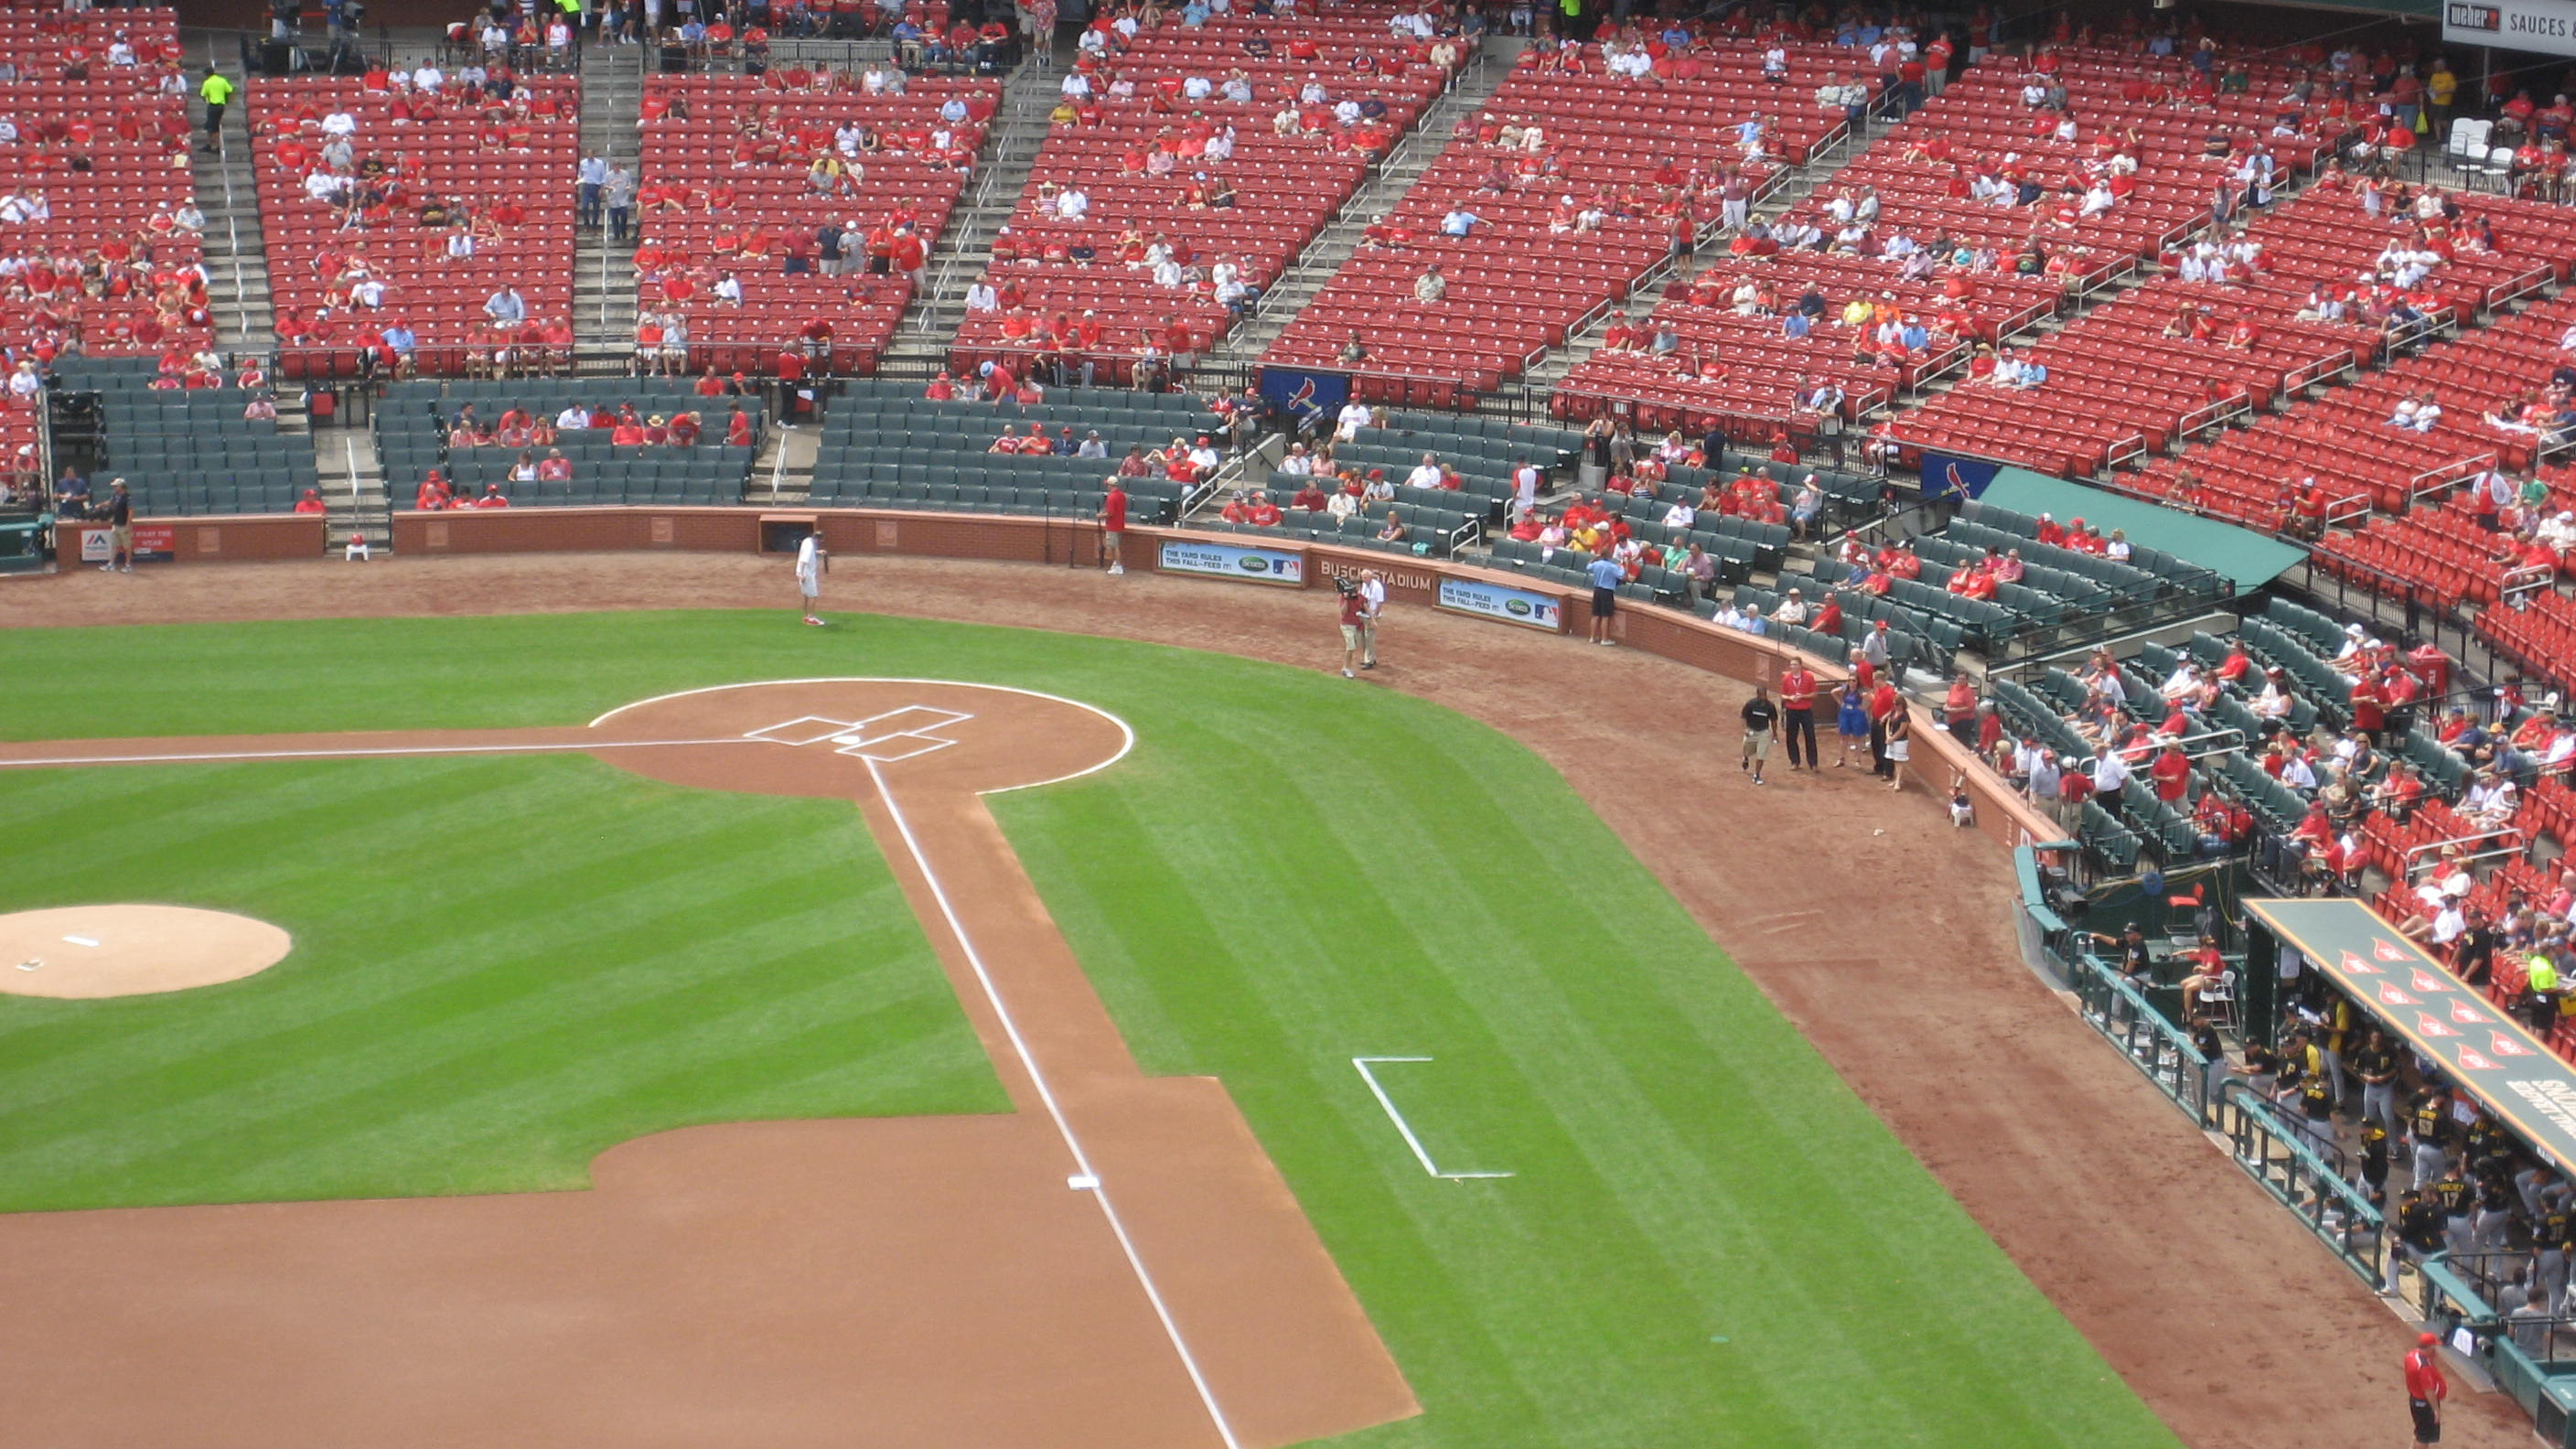 cardinals green seats